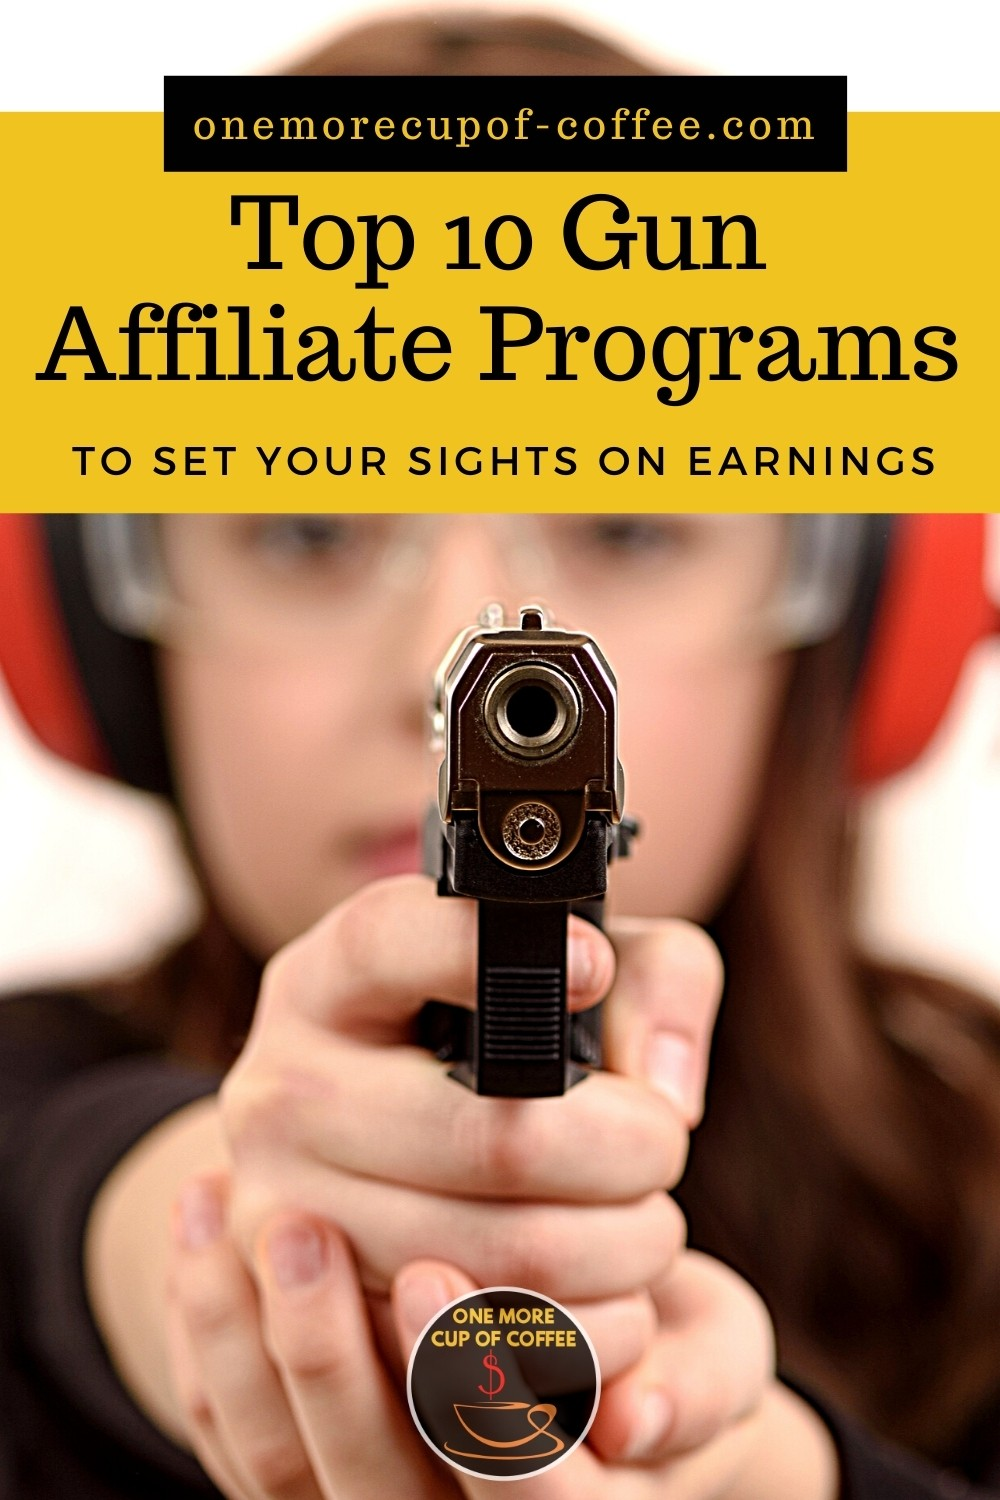 """closeup image of a woman wearing a red earmuffs and holding a gun to the camera; with text overlay """"Top 10 Gun Affiliate Programs To Set Your Sights On Earnings"""""""